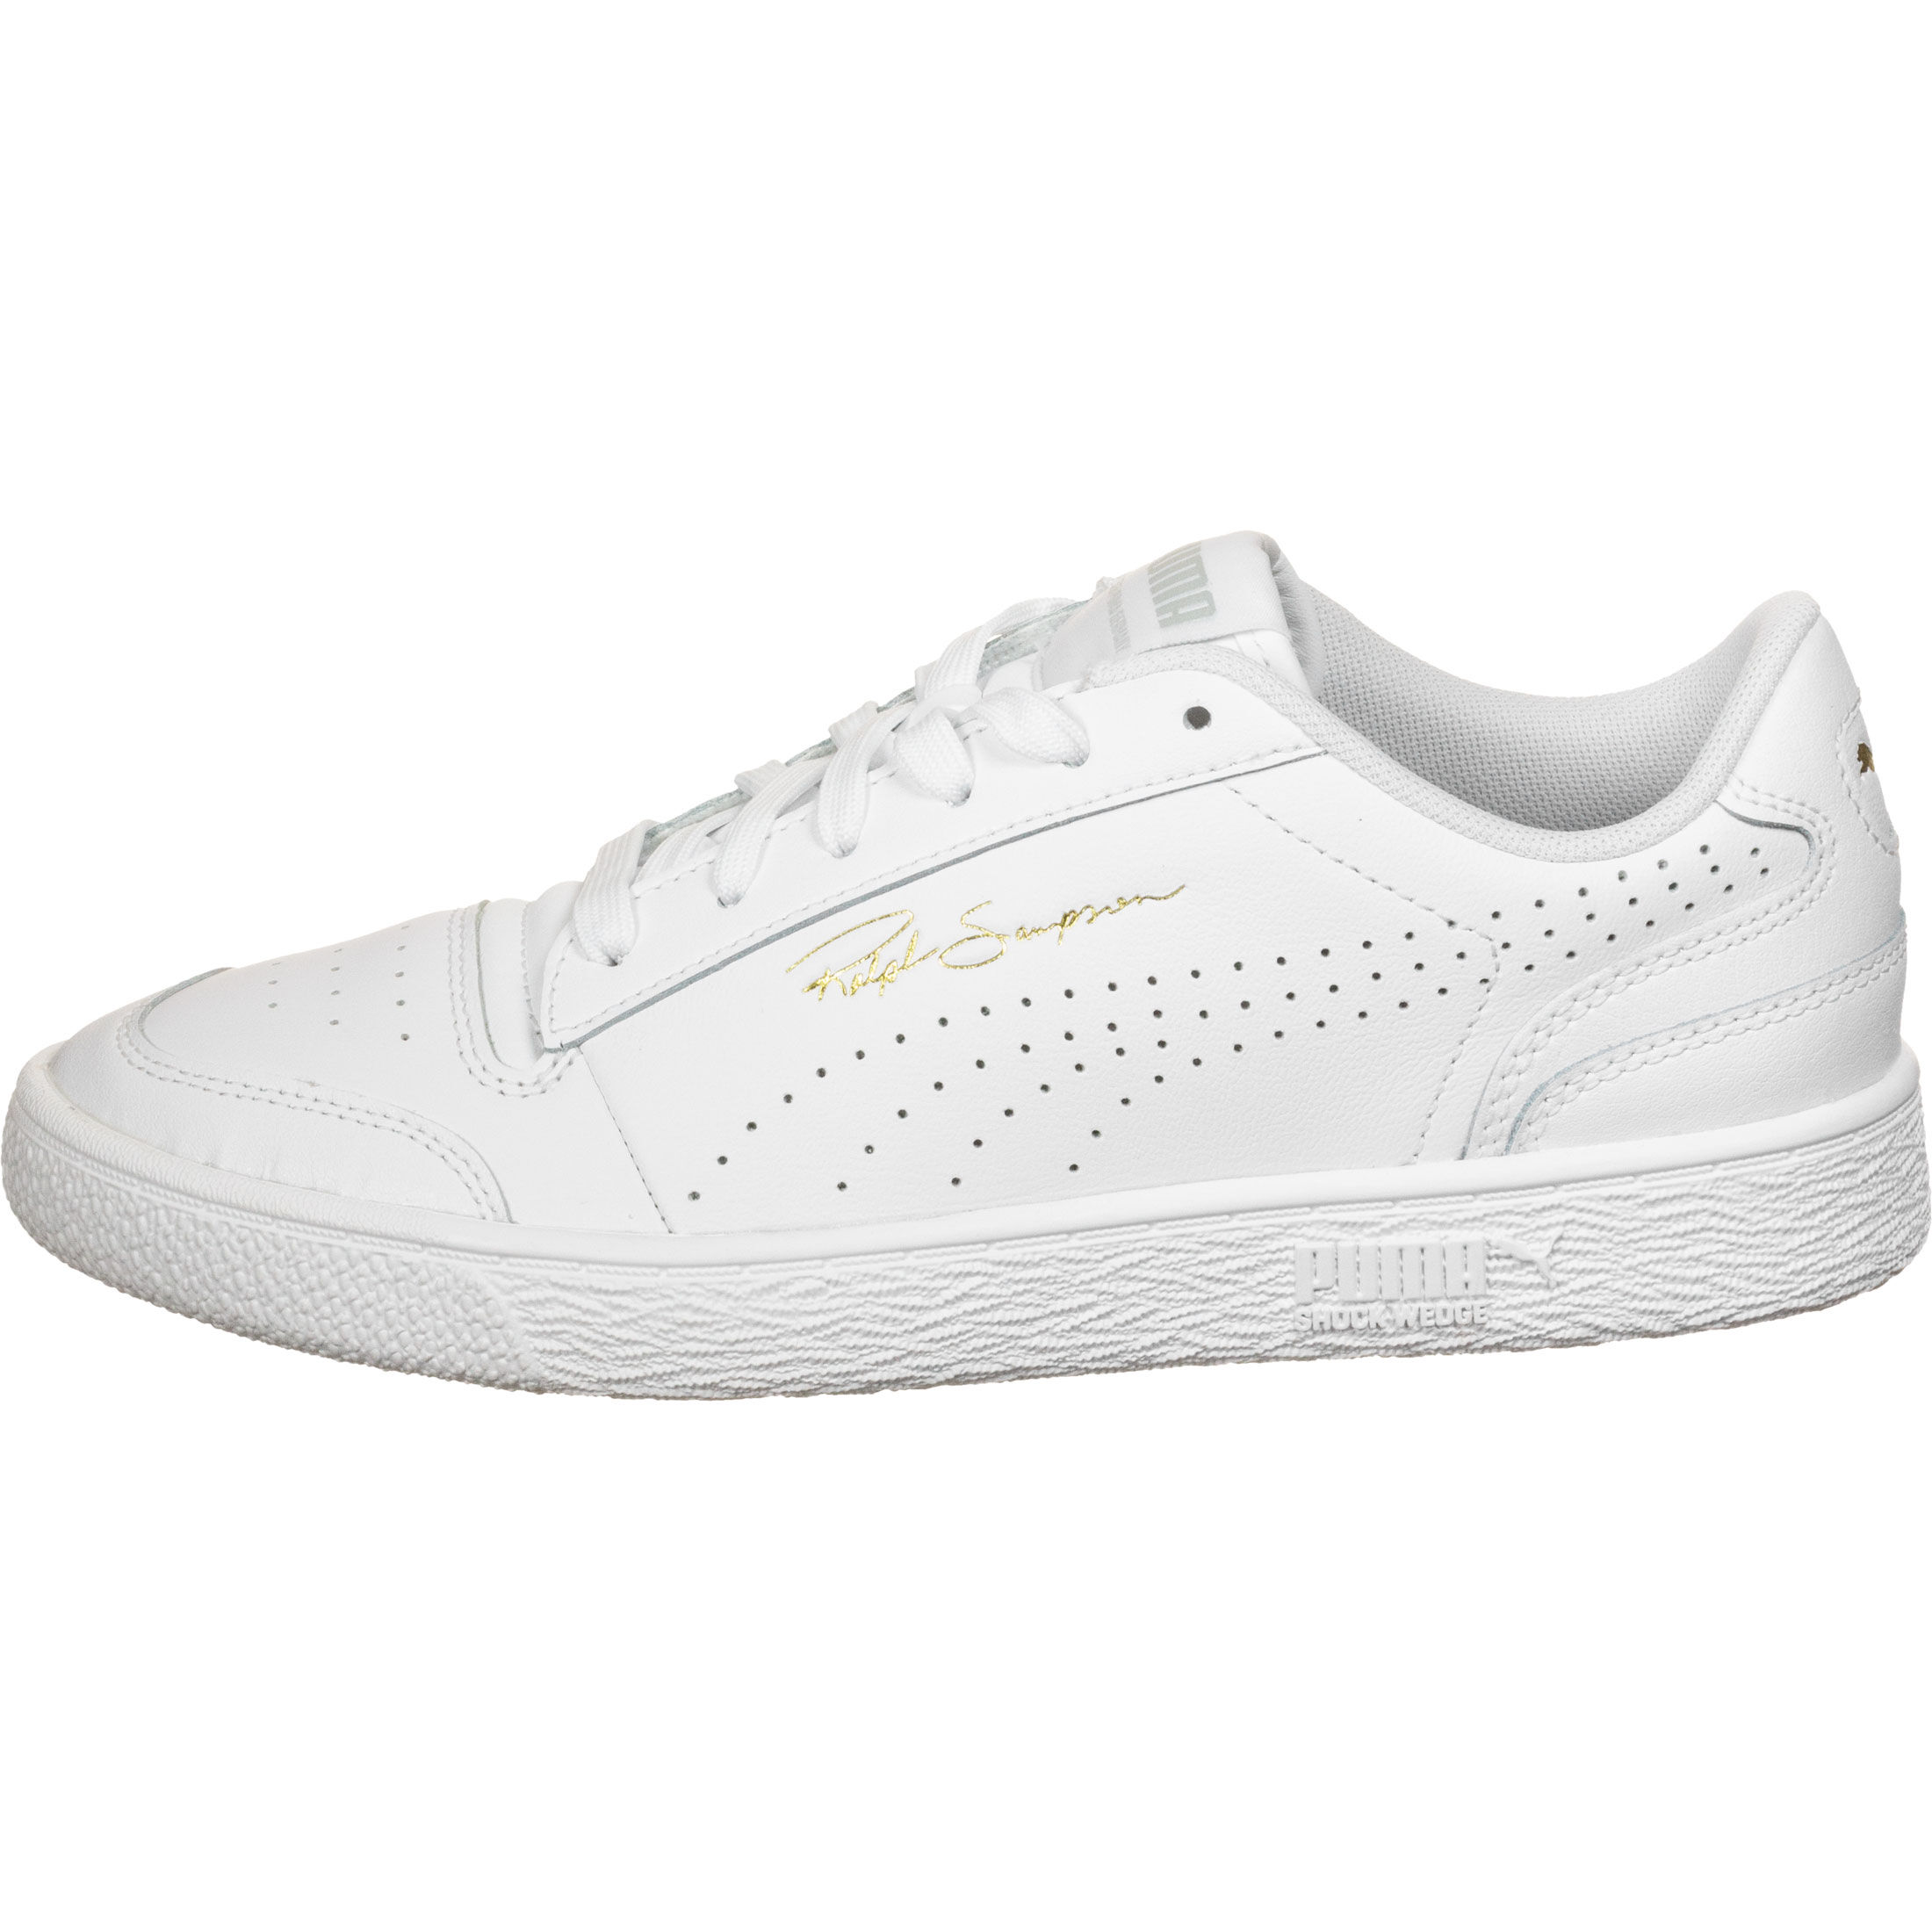 Puma Ralph Sampson Lo Perf W - Sneakers Low at Stylefile